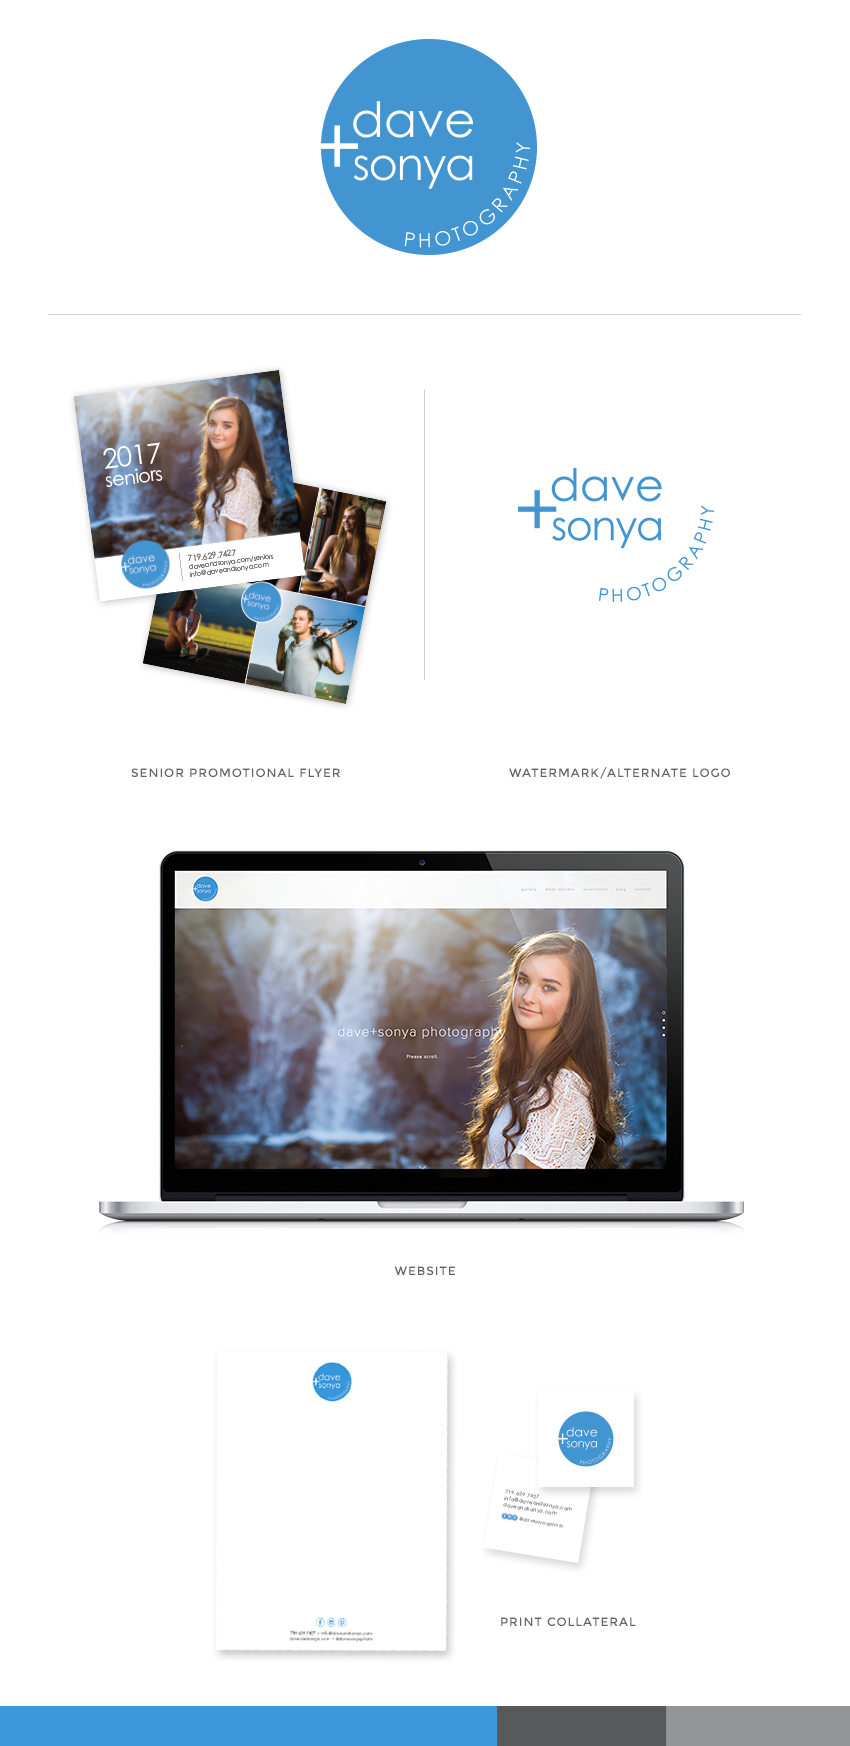 Colorado Springs photographer logo and brand design. Senior portrait photographer, Dave + Sonya Photography.